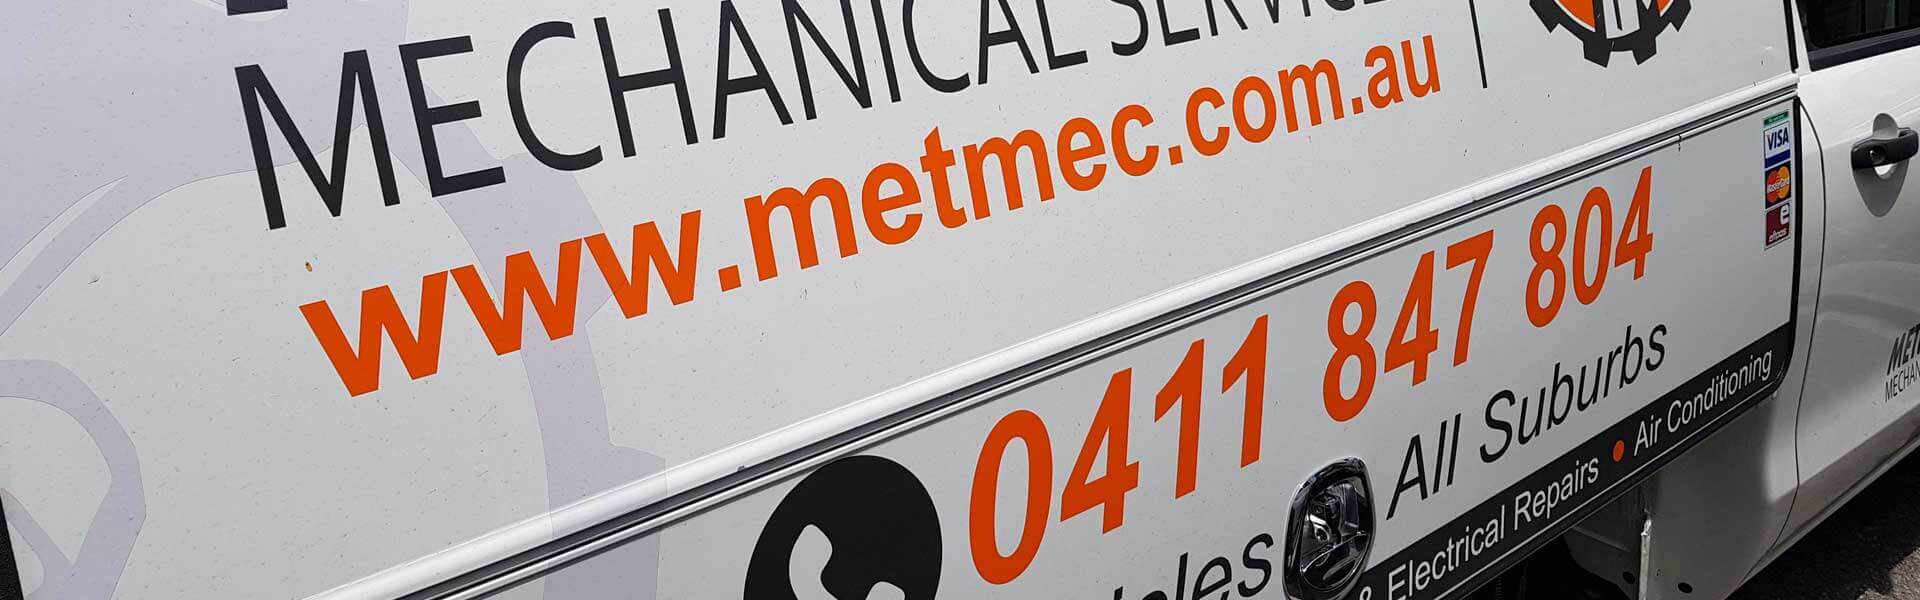 Meticulous Mechanical Services - Service Vehicle Banner